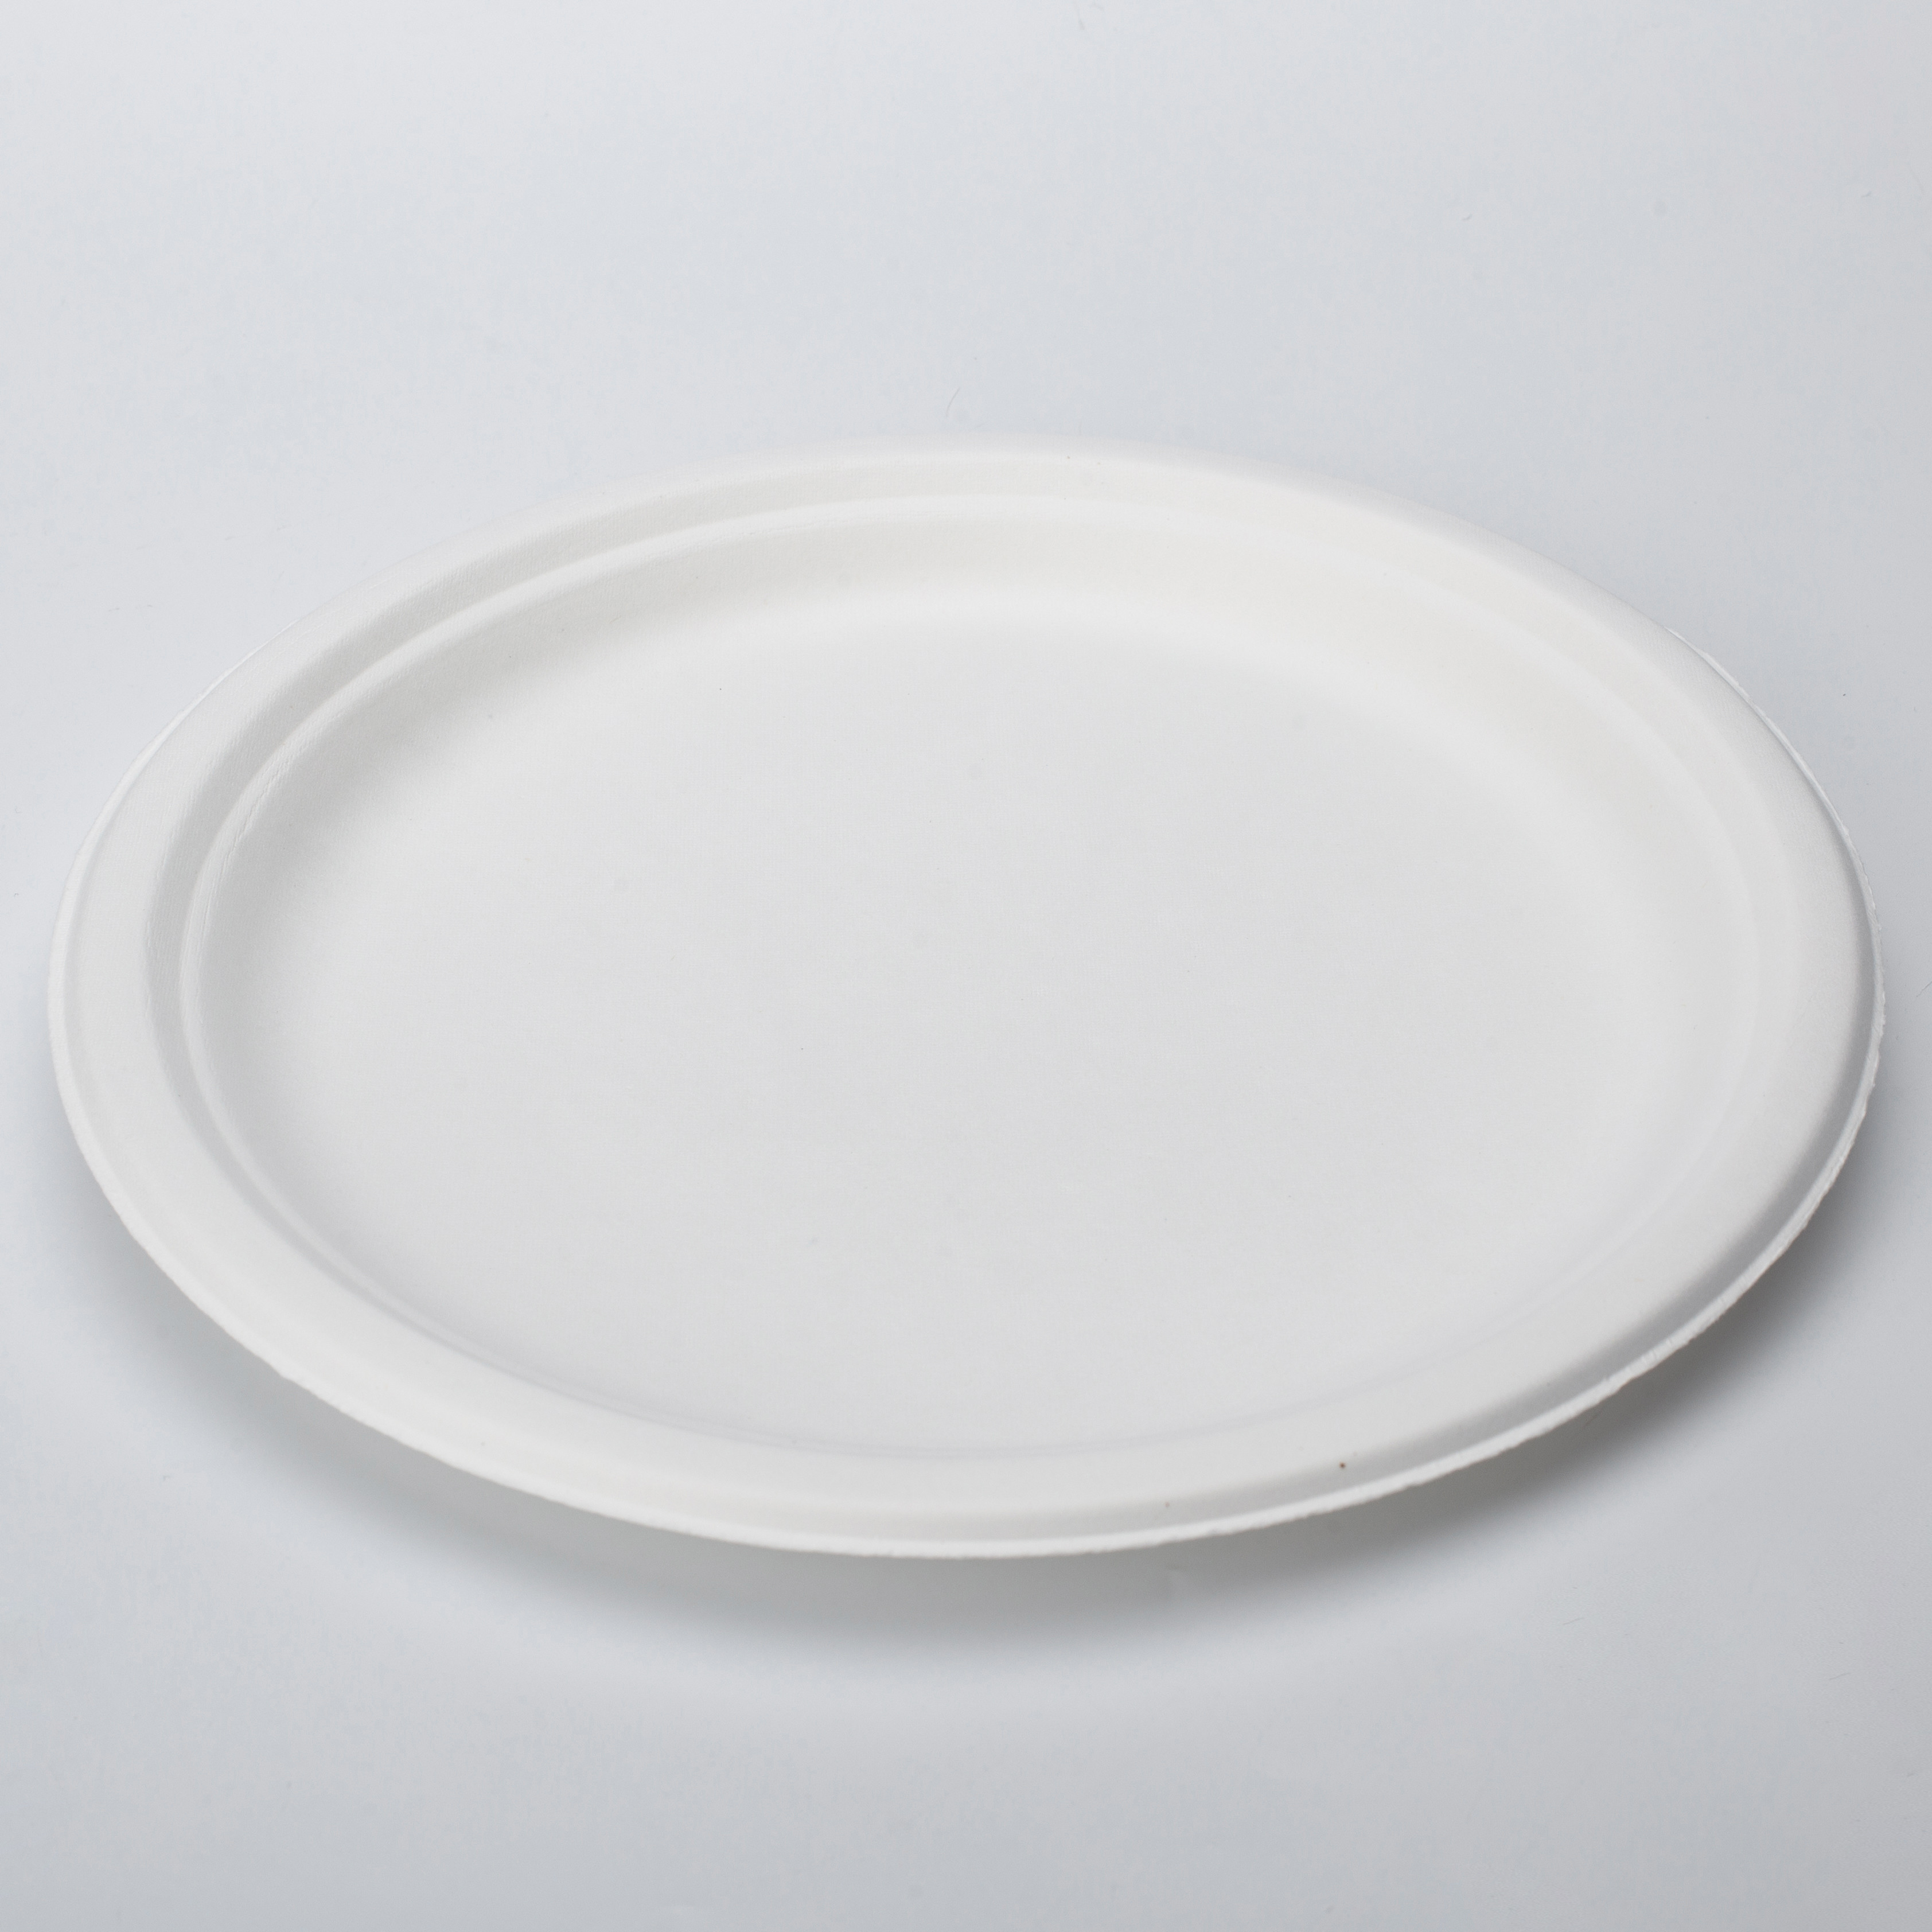 Eco friendly party heavy weight cutlery sugarcane pulp Biodegradable Tableware Disposable Dinnerware Sets 9 inch bagasse plates